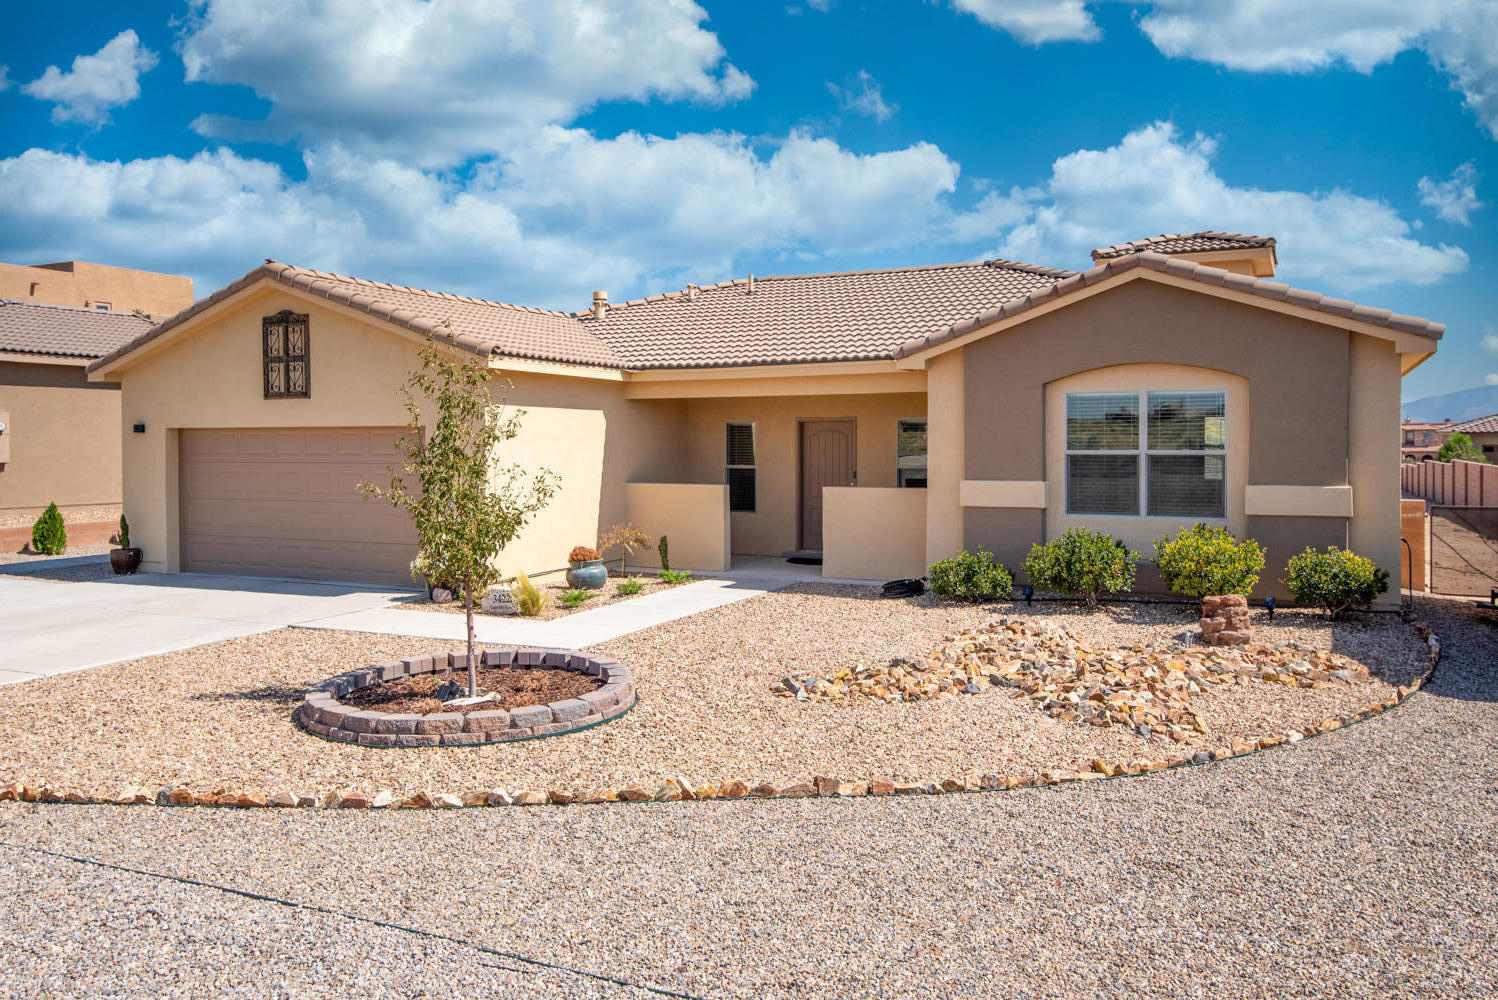 Beautiful well maintained 3BR 2BA Spacious open floor plan, kitchen boasts of new stainless appliances, double compartment dish washer, granite countertops, large island, custom Sky Chase skylight,. Enjoy stunning views of the Sandia Mountains from backyard. This and more on 0.50 acre lot!